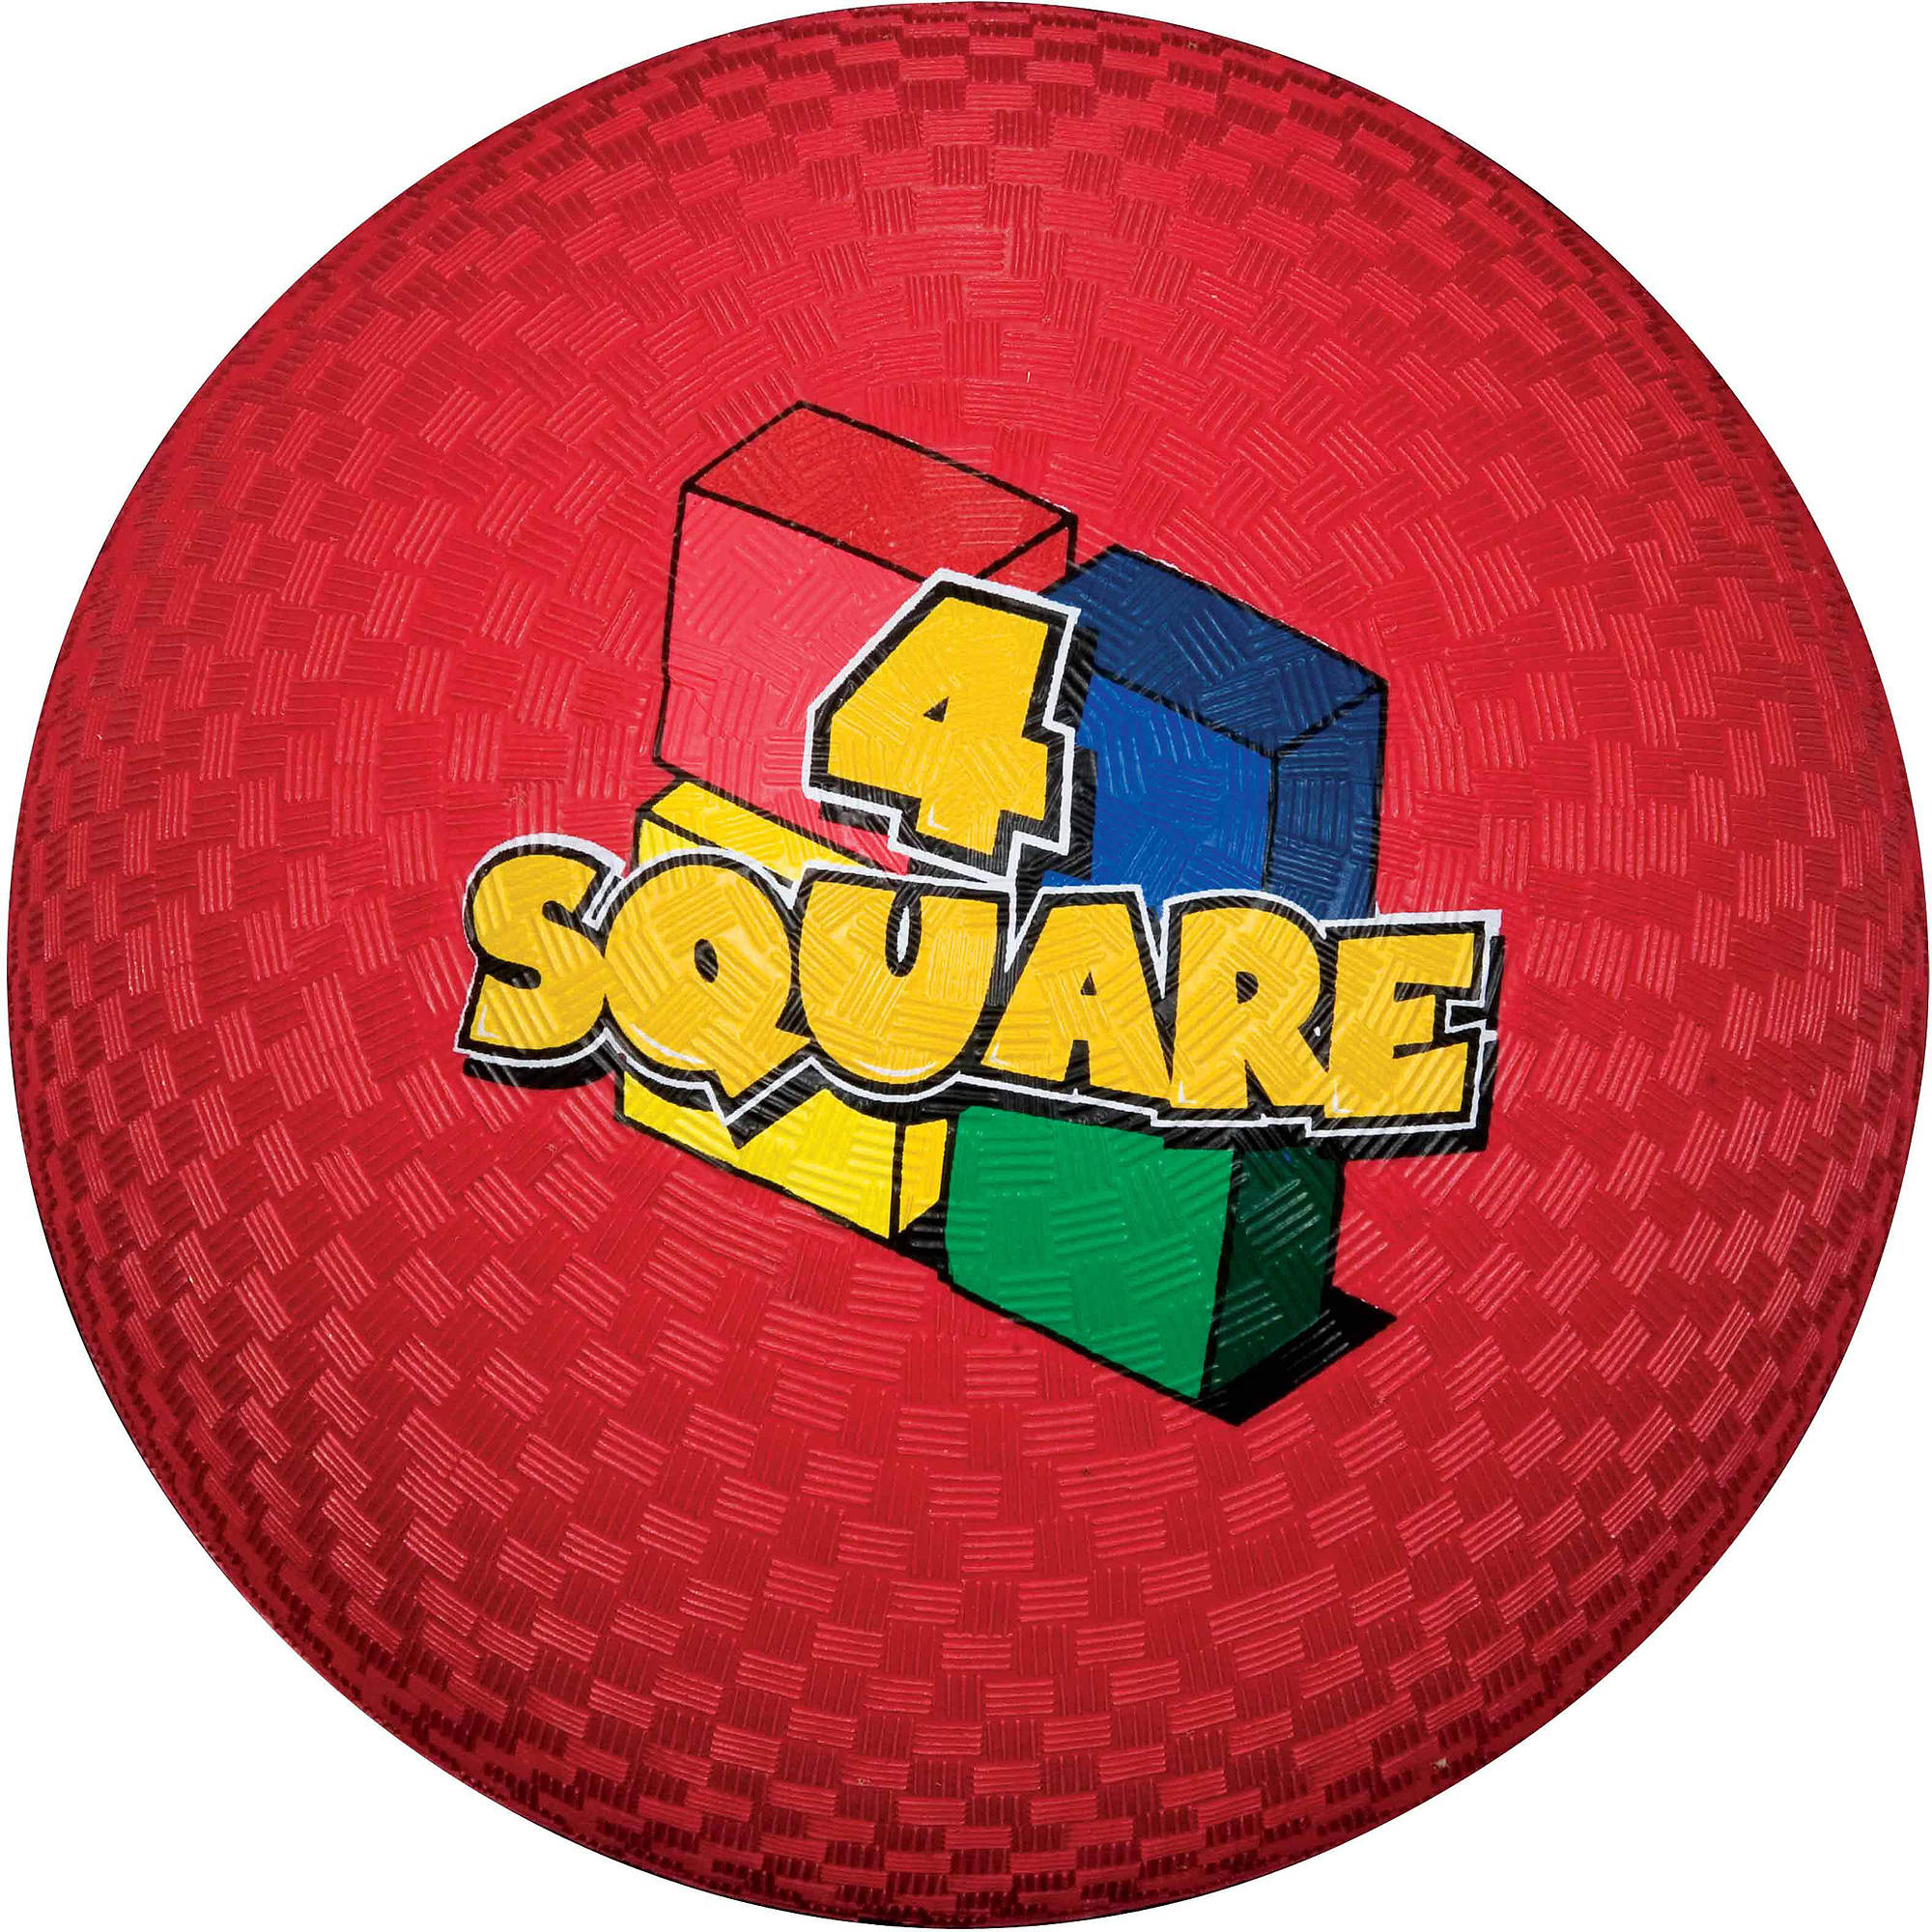 Image result for playground ball